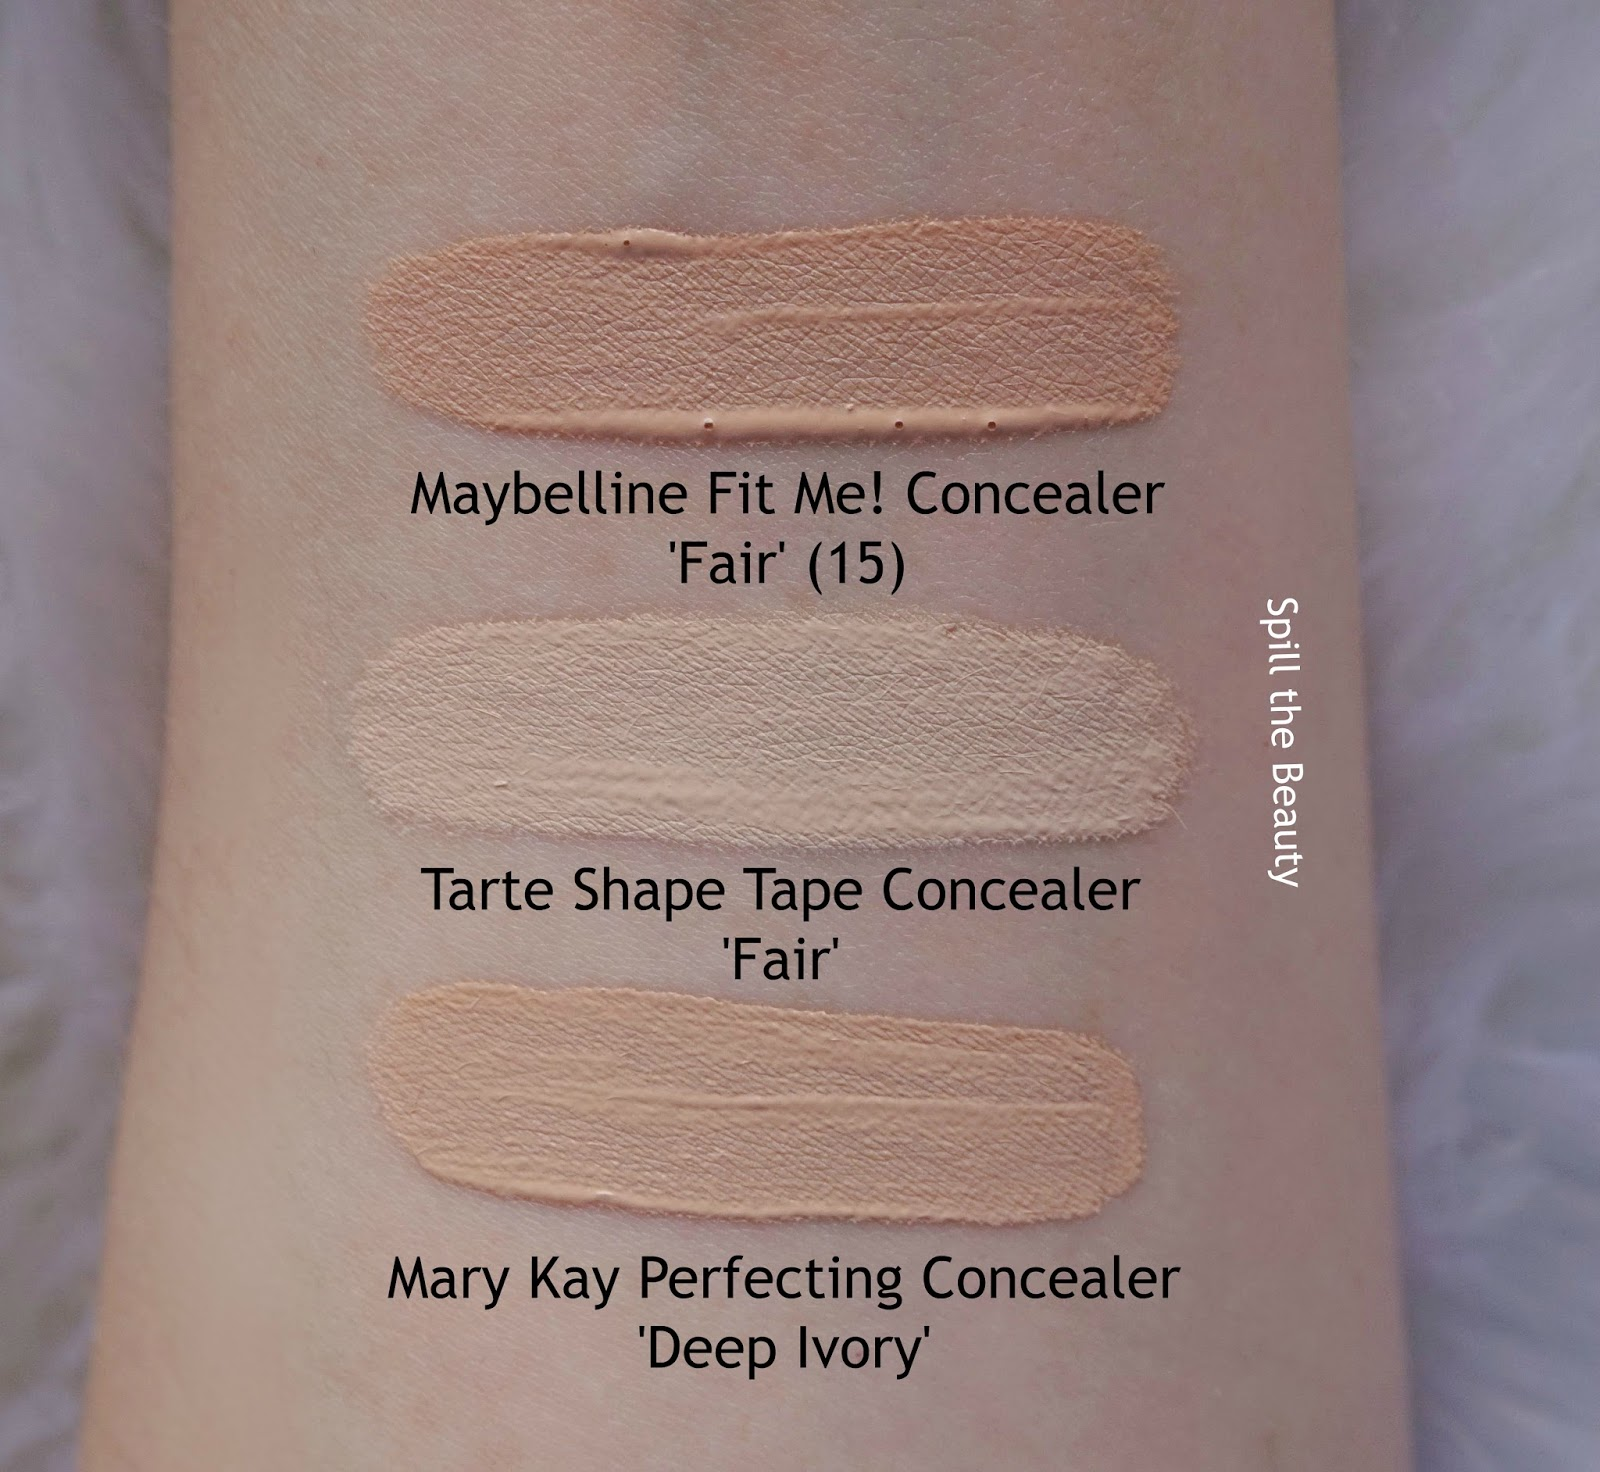 Tarte Shape Tape Contour Concealer fair Review Comparison Swatches Before and After dupe maybelline fit me mary kay